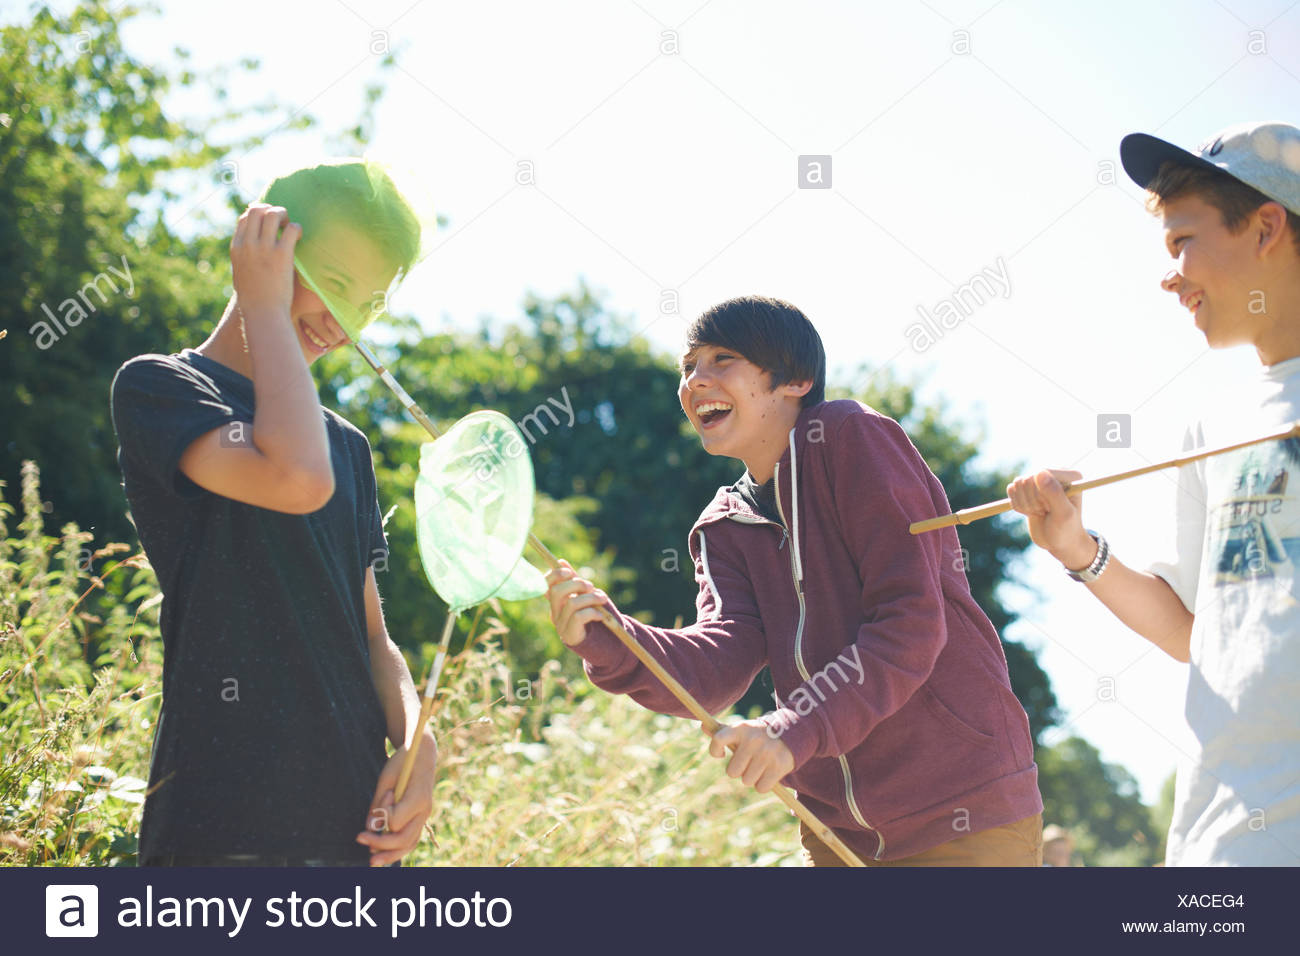 Three boys playing with fishing nets - Stock Image